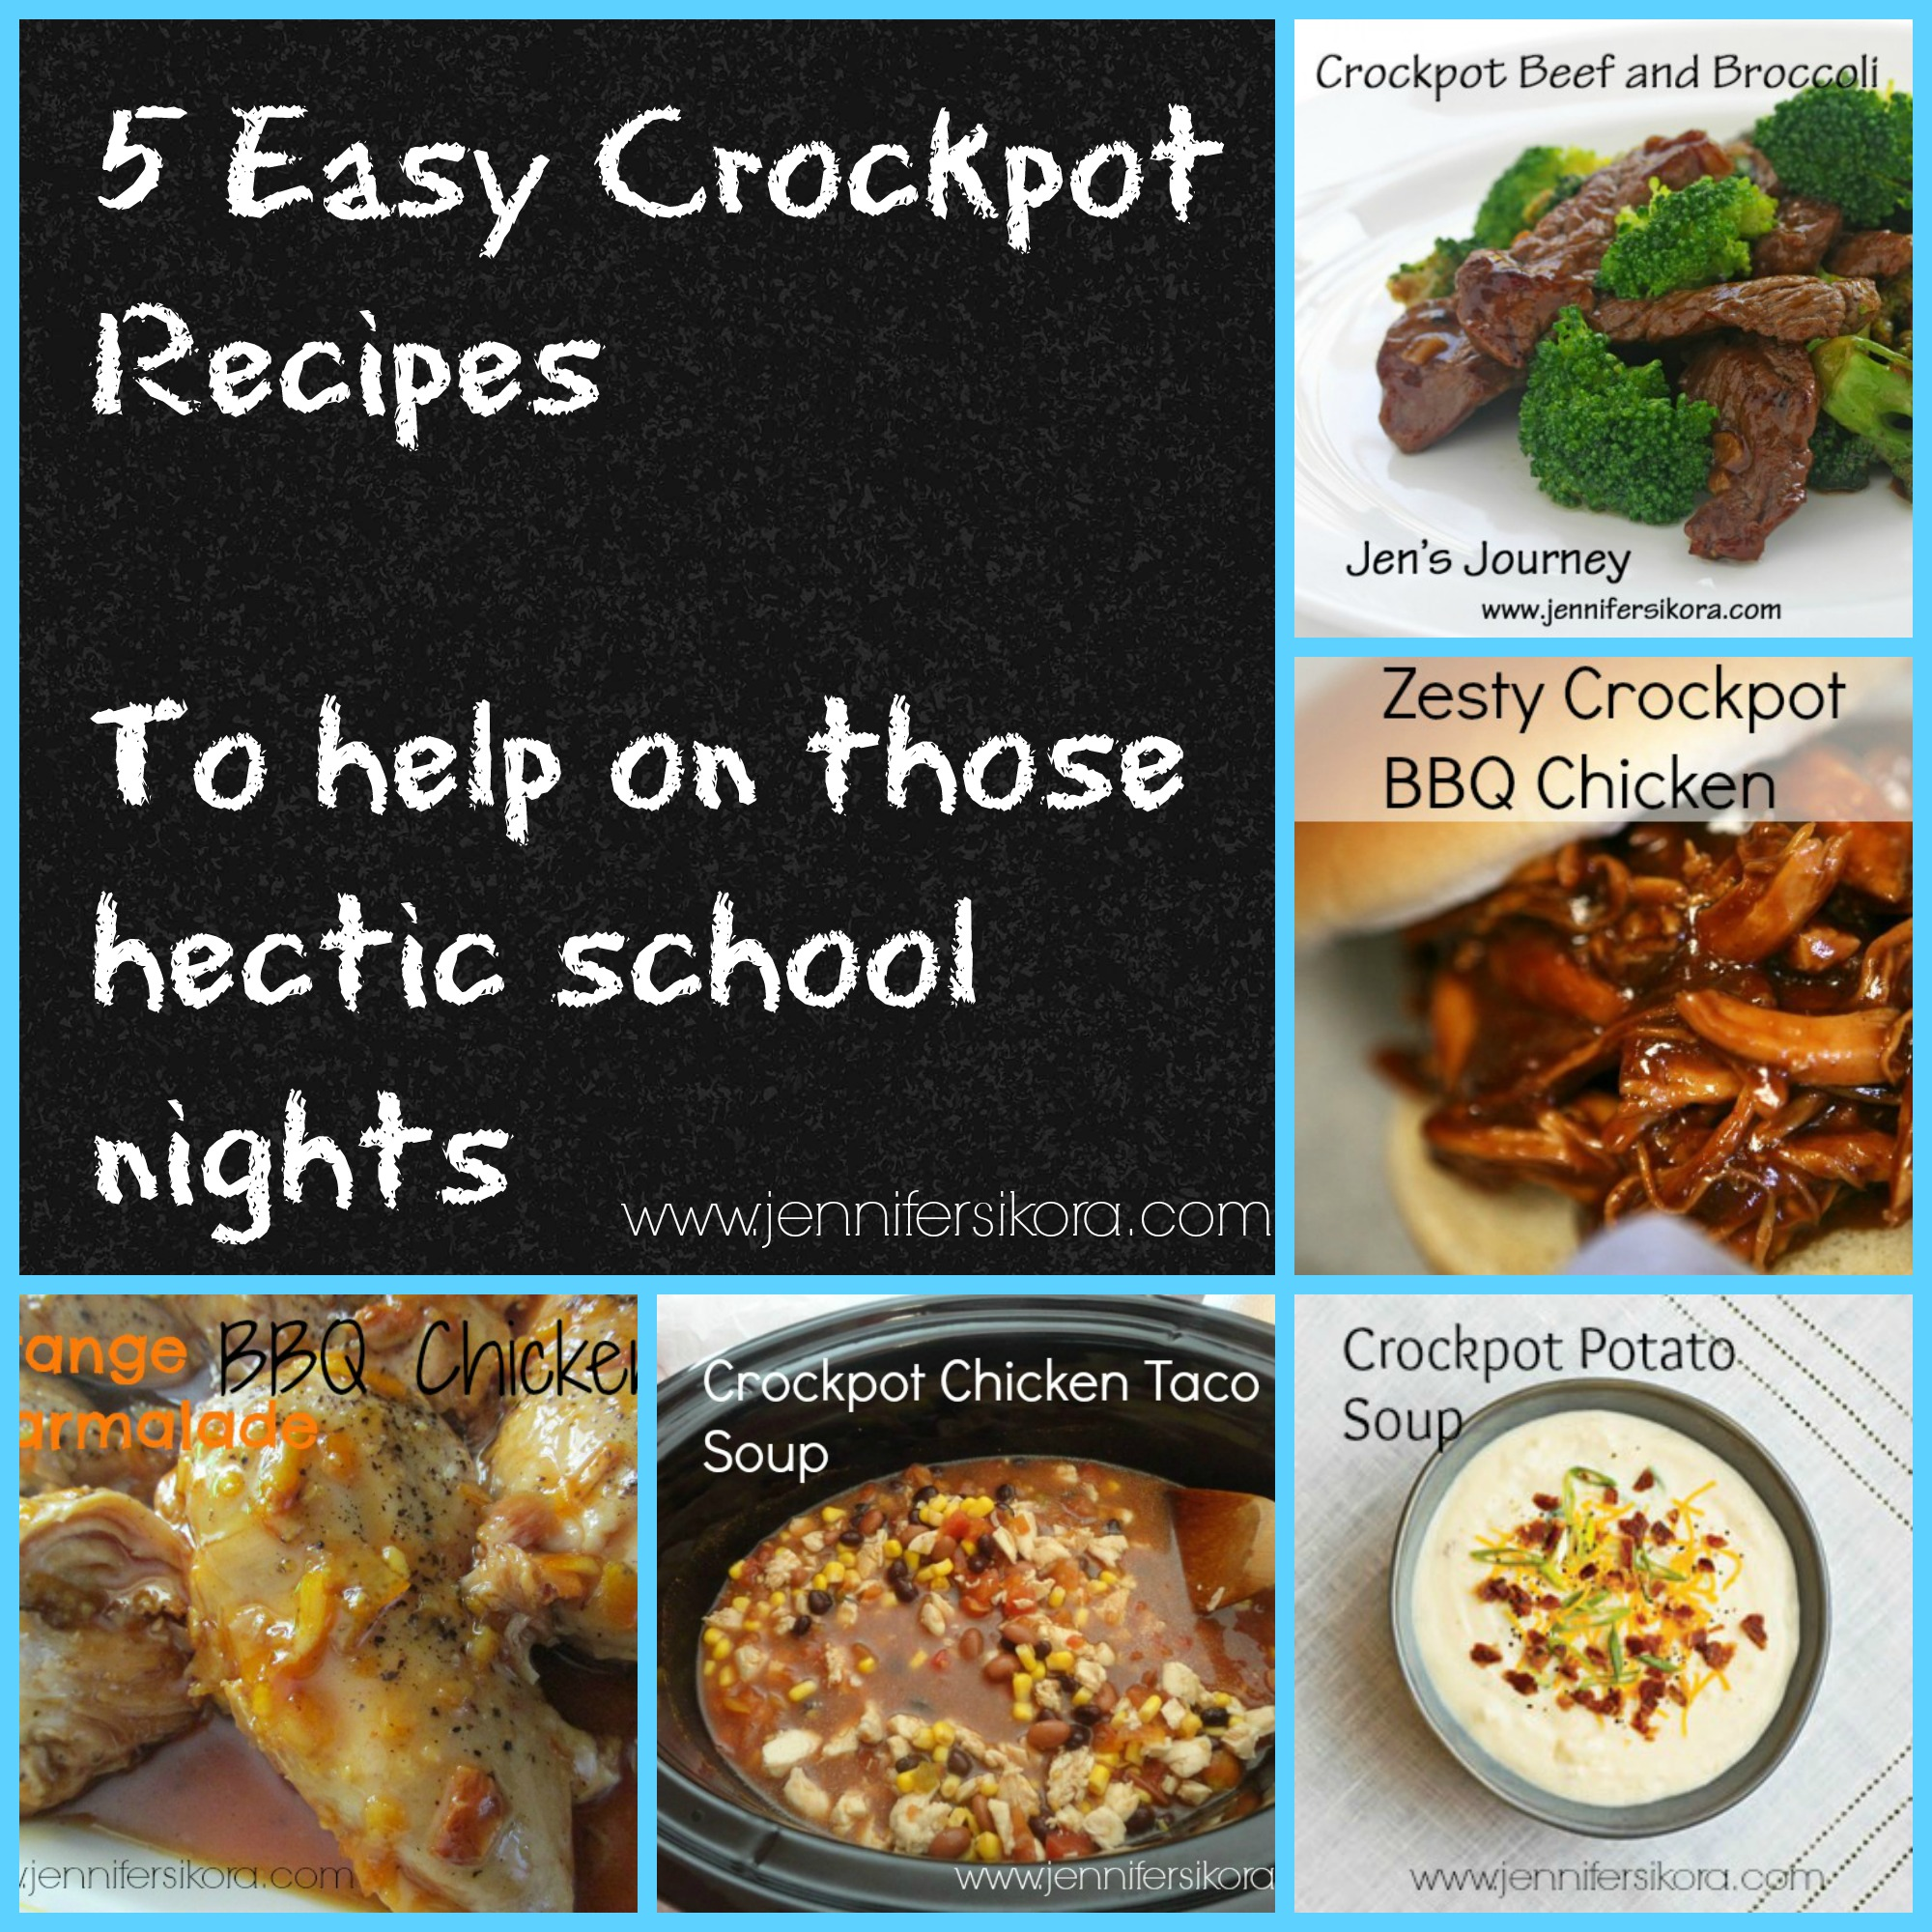 5 Easy Crockpot Recipes to Help with Those Hectic School Nights